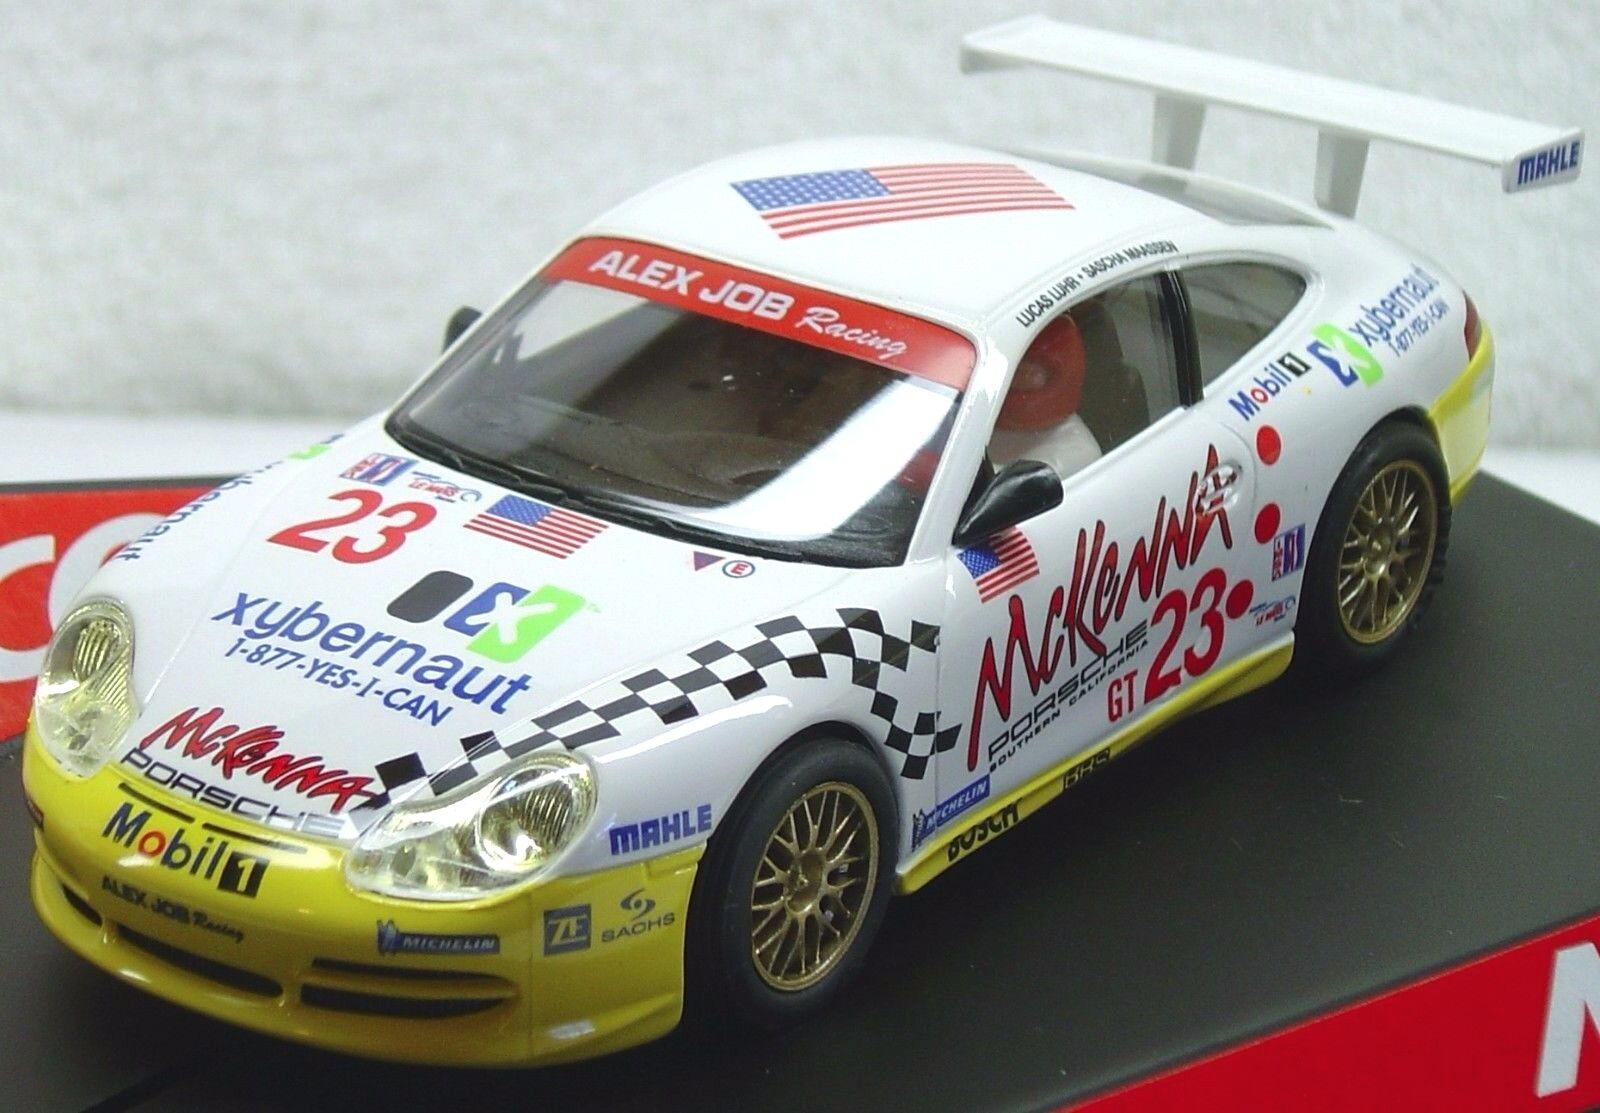 Porsche 911 gt3 ninco 50304 alex job 1   32 slot car neue